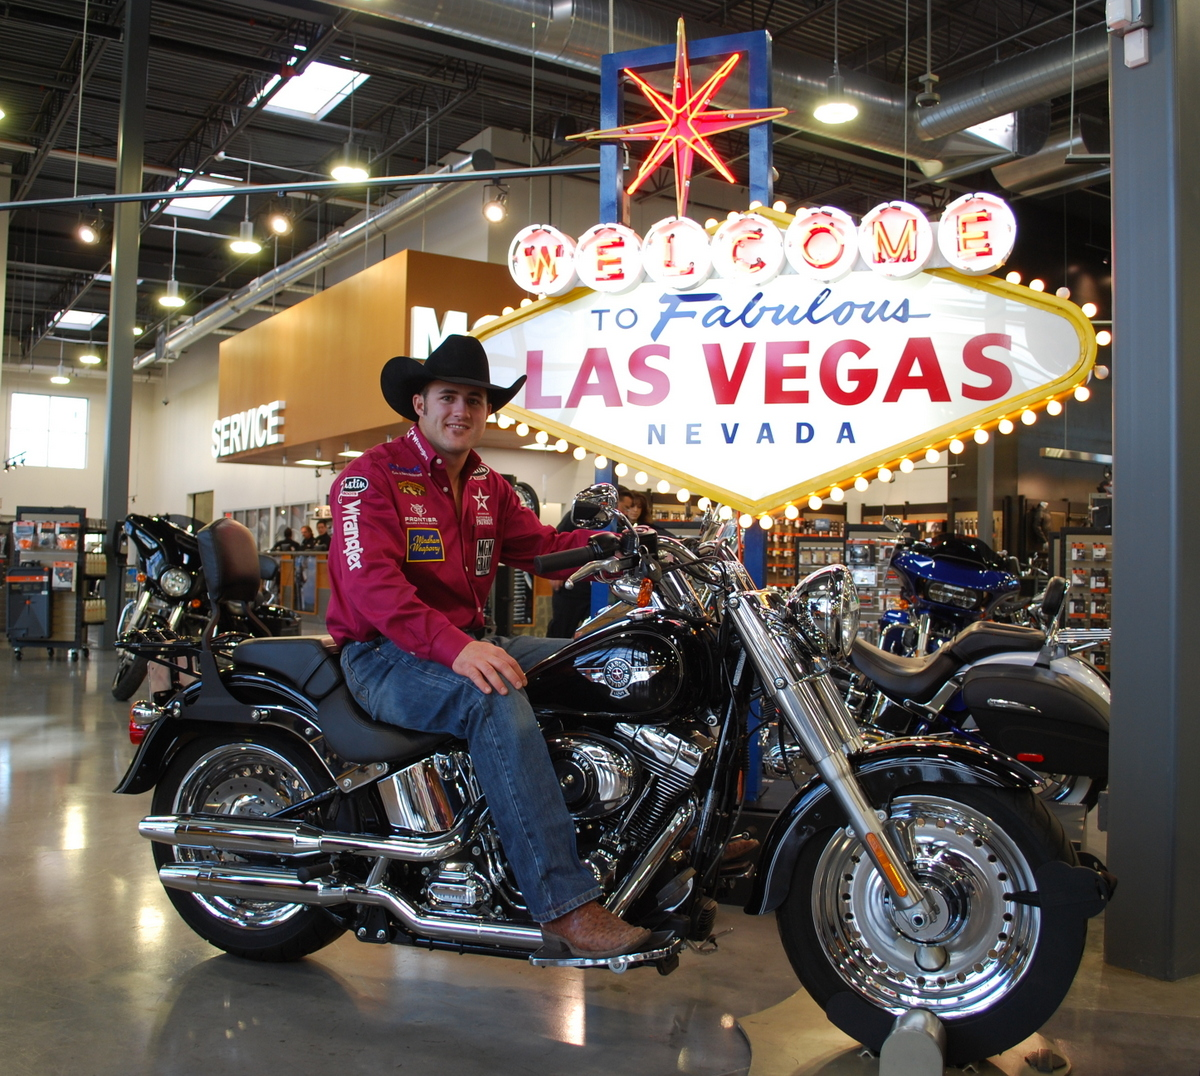 Feild revs up for Round 7 at local Harley dealership | NFR Insider